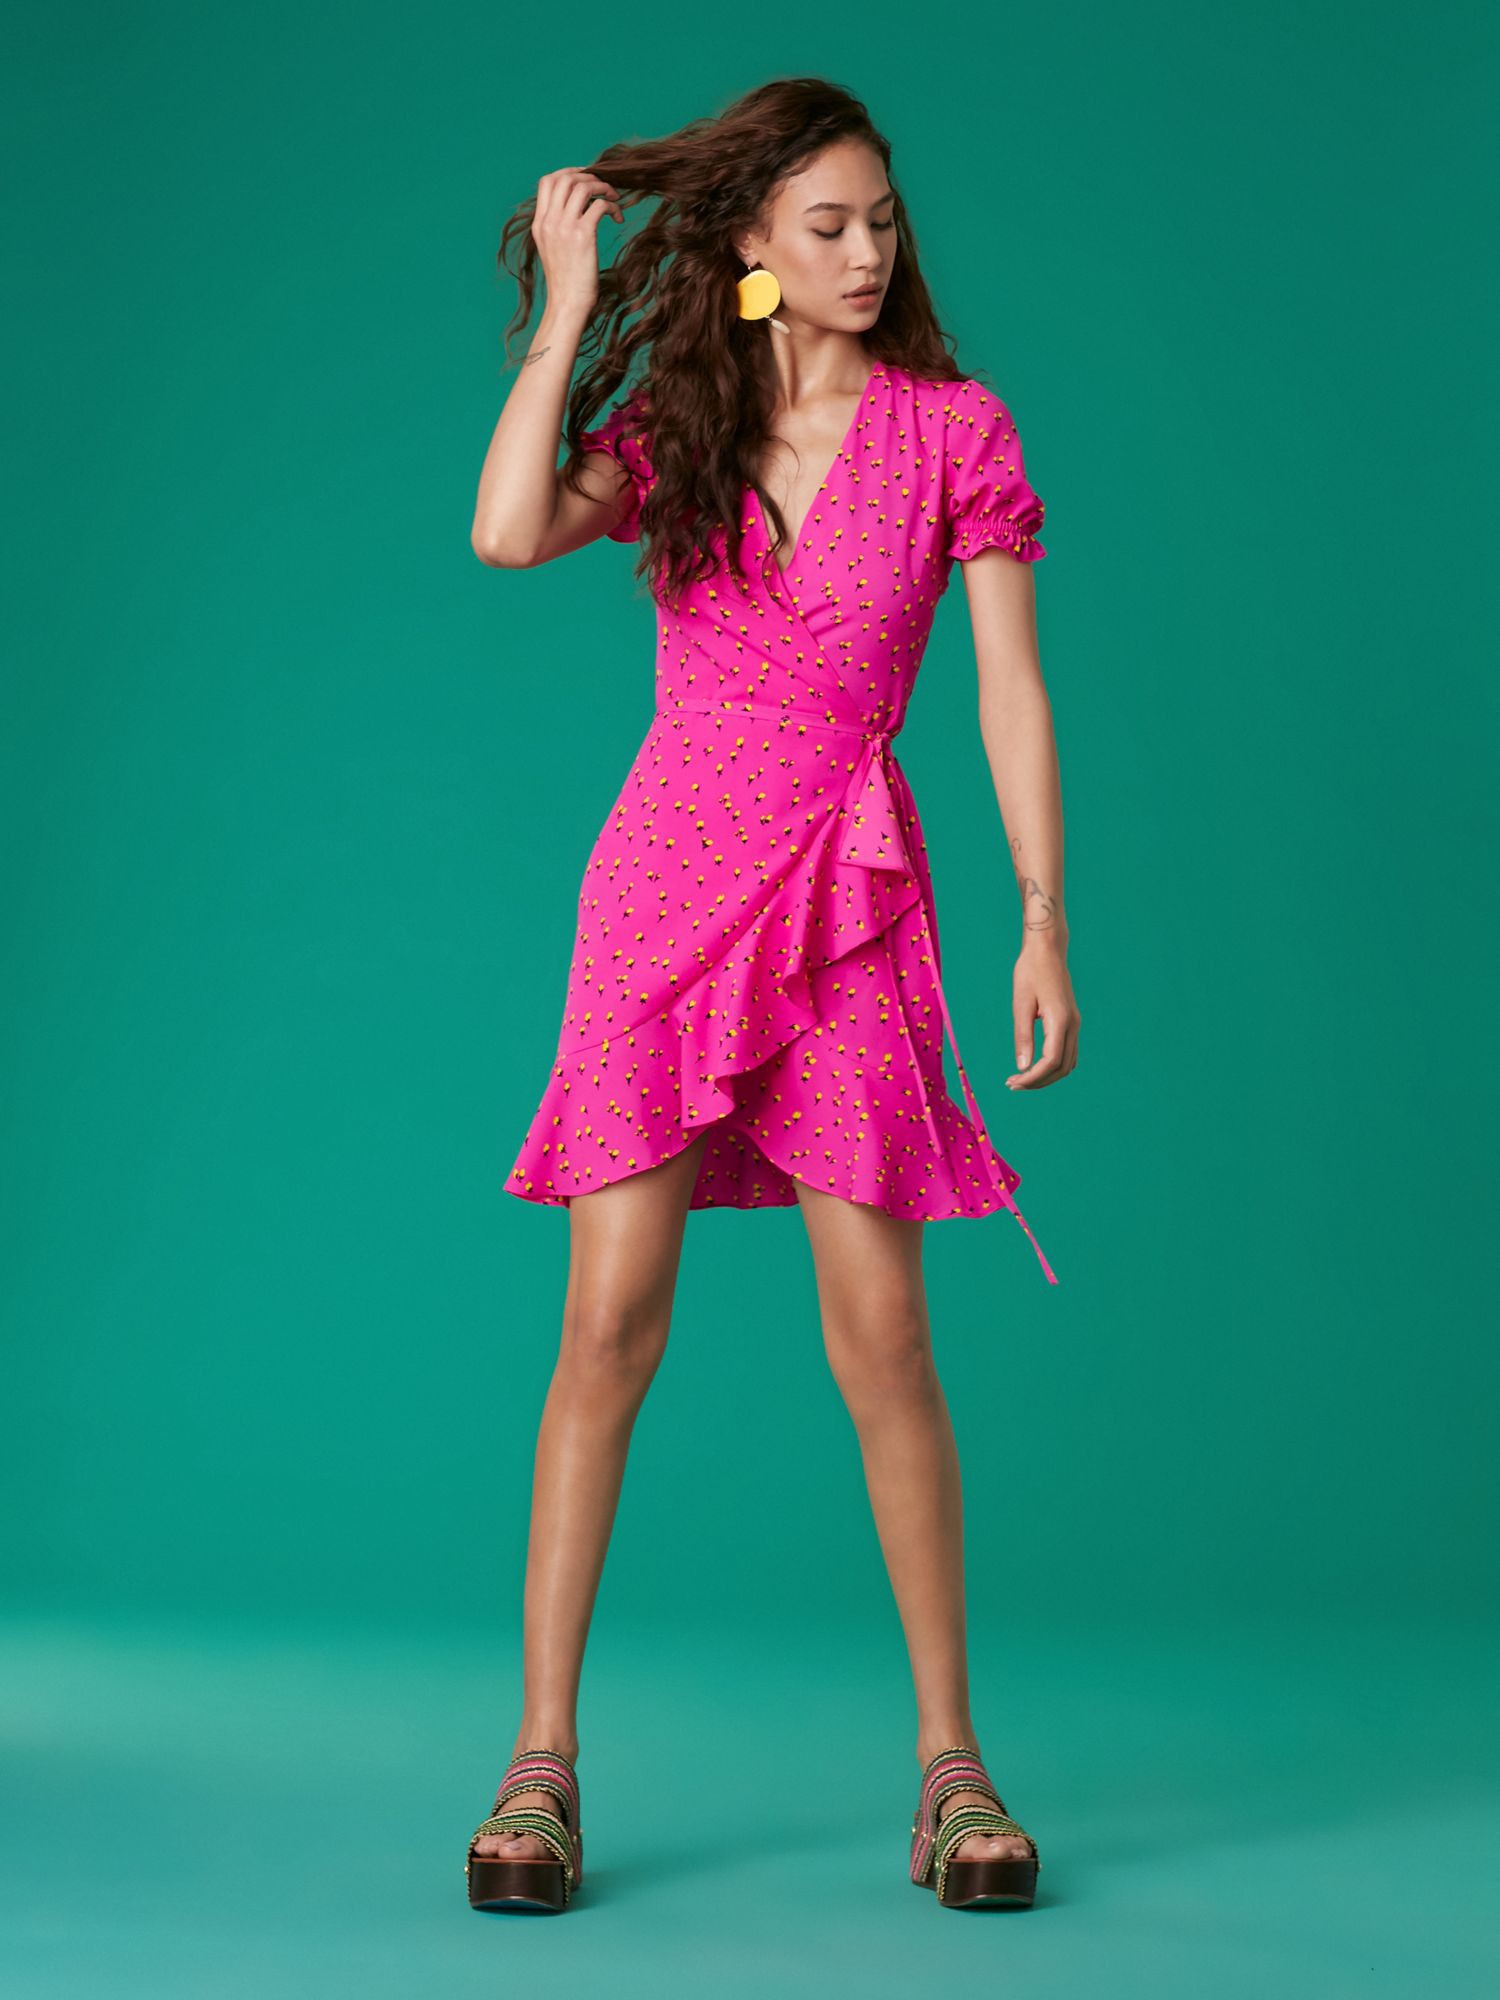 3b024e8430 Diane Von Furstenberg Dvf Short Sleeve Ruffle Wrap Dress - P Pink ...